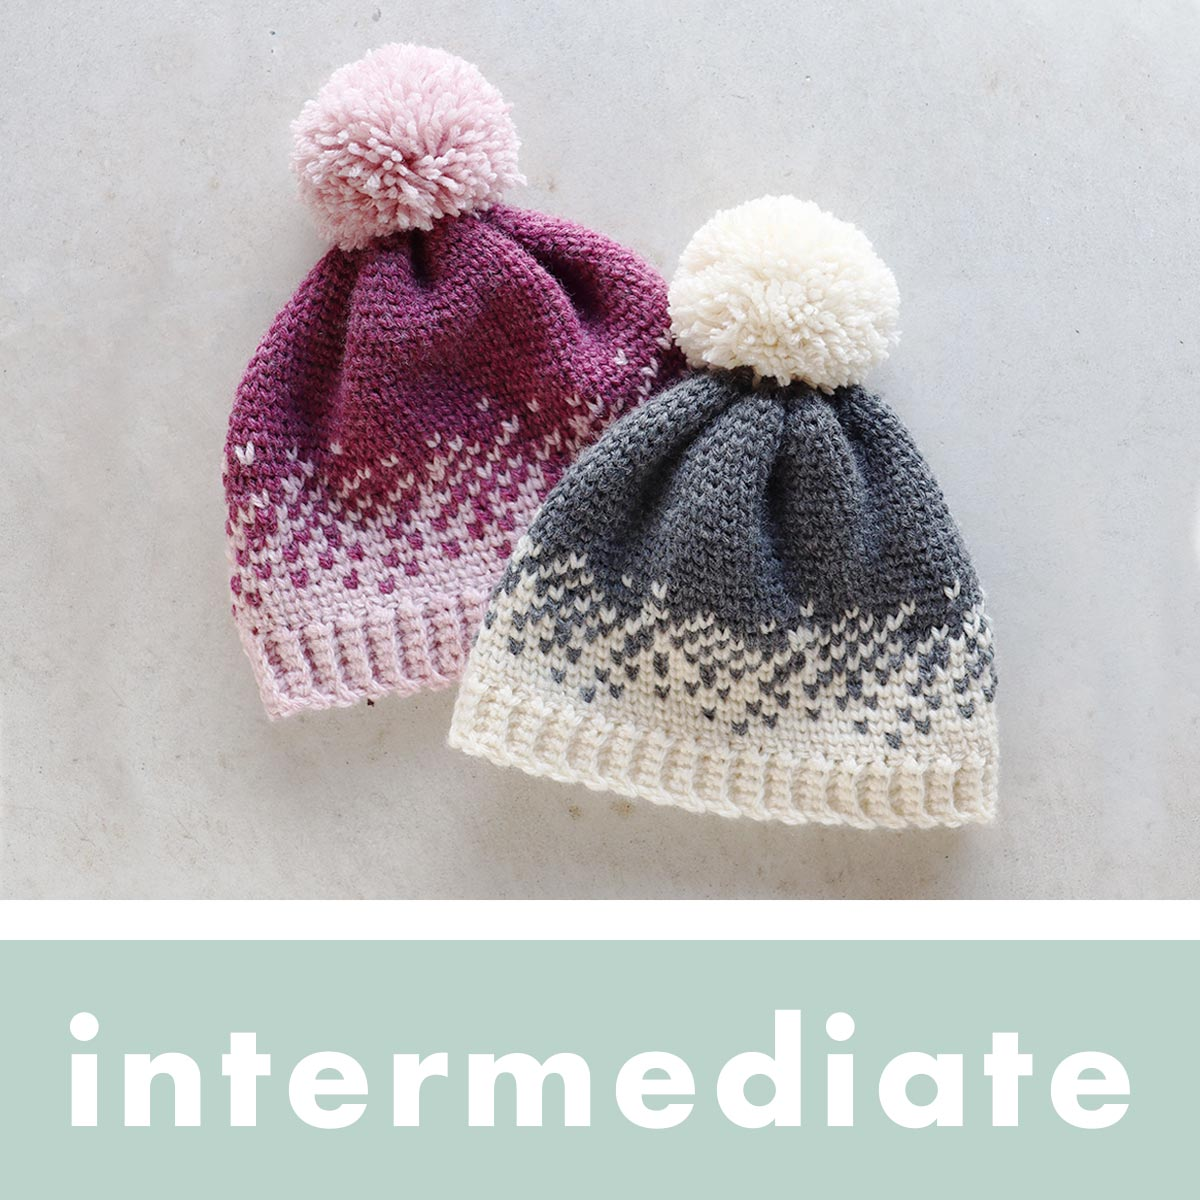 Intermediate Crochet Patterns